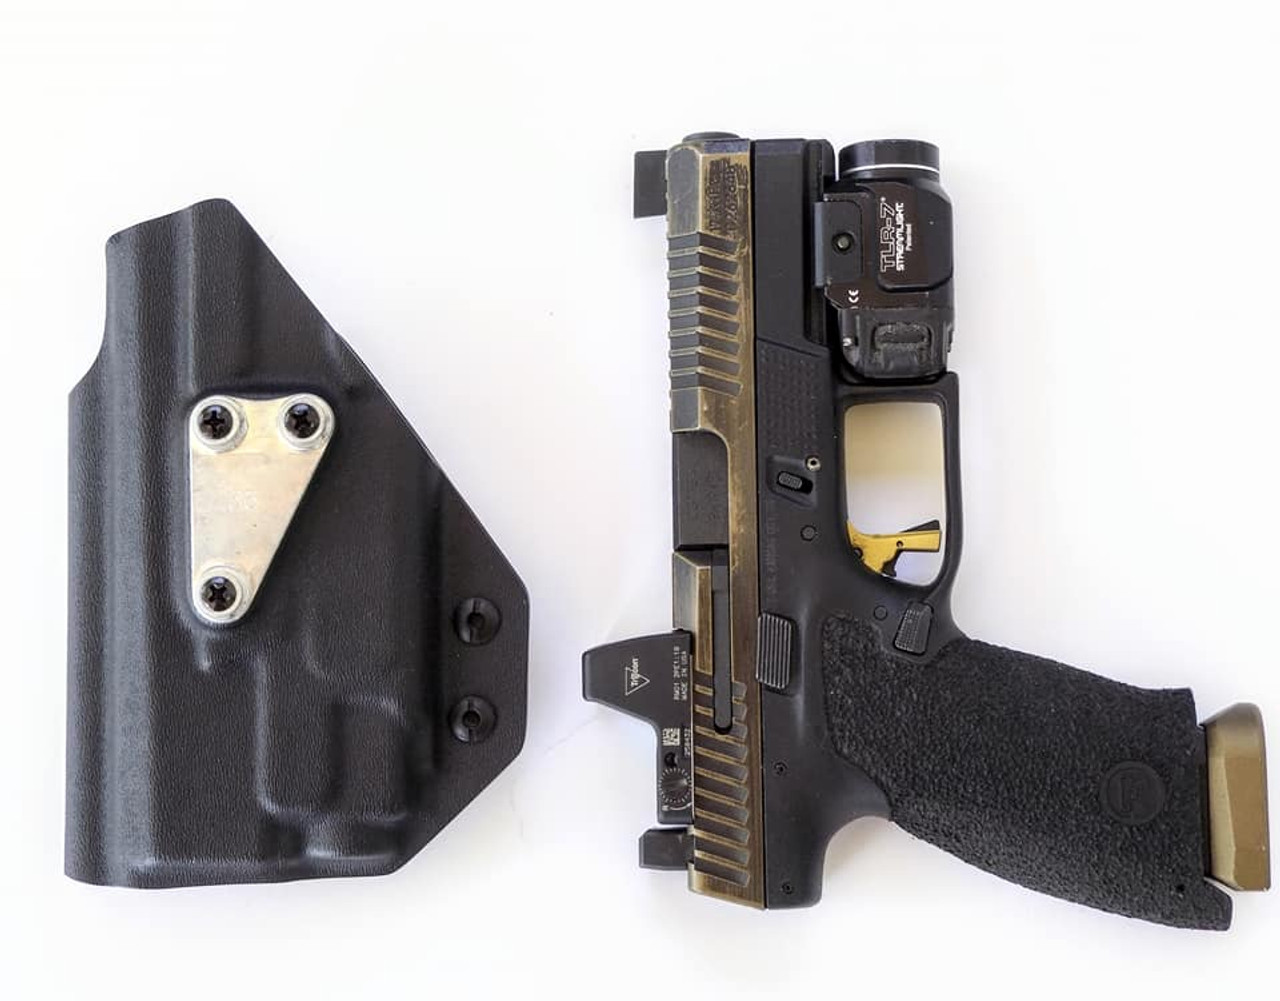 CZ P10c Light Bearing G-Code G-Code RTI Holster